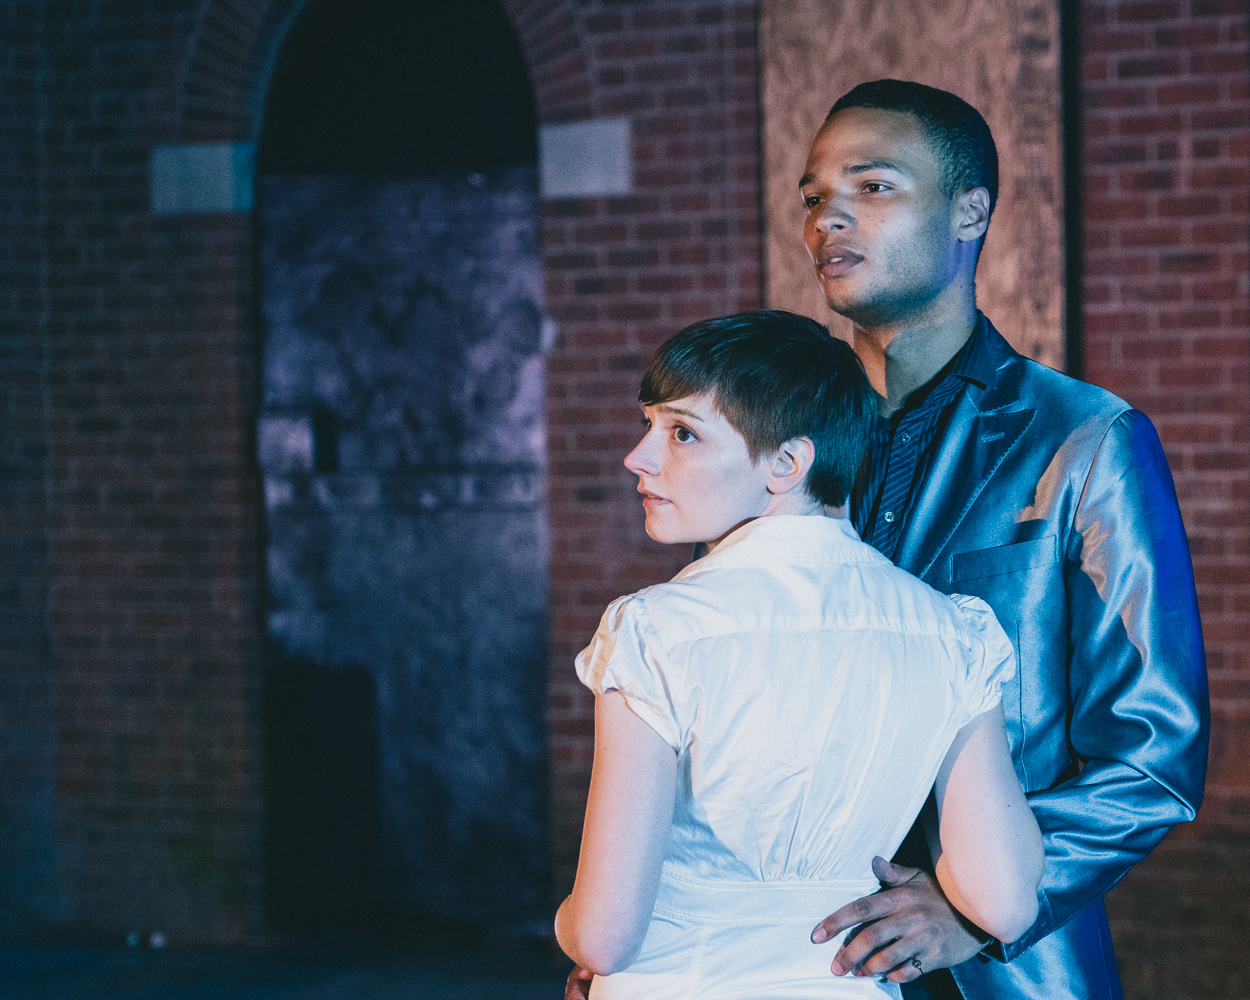 Smith Street Stage, Romeo and Juliet, 2019, directed by Shaun Bennet Fauntleroy. photo by Chris Montgomery